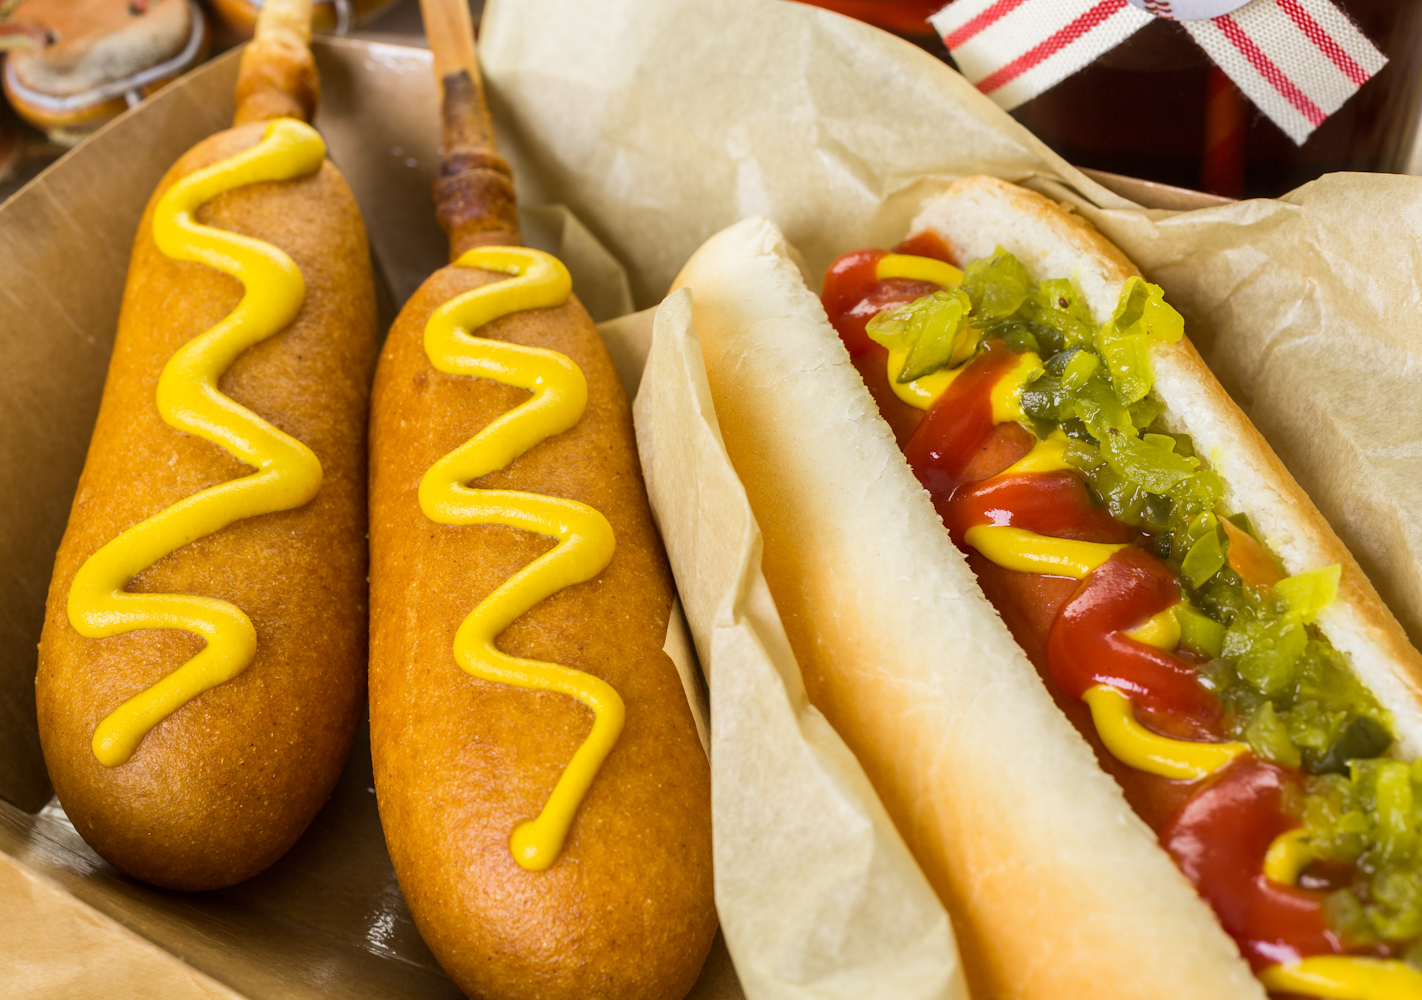 Whether it's a local fair, or a game at a famous sports arena, corn dogs are a staple of the American diet.